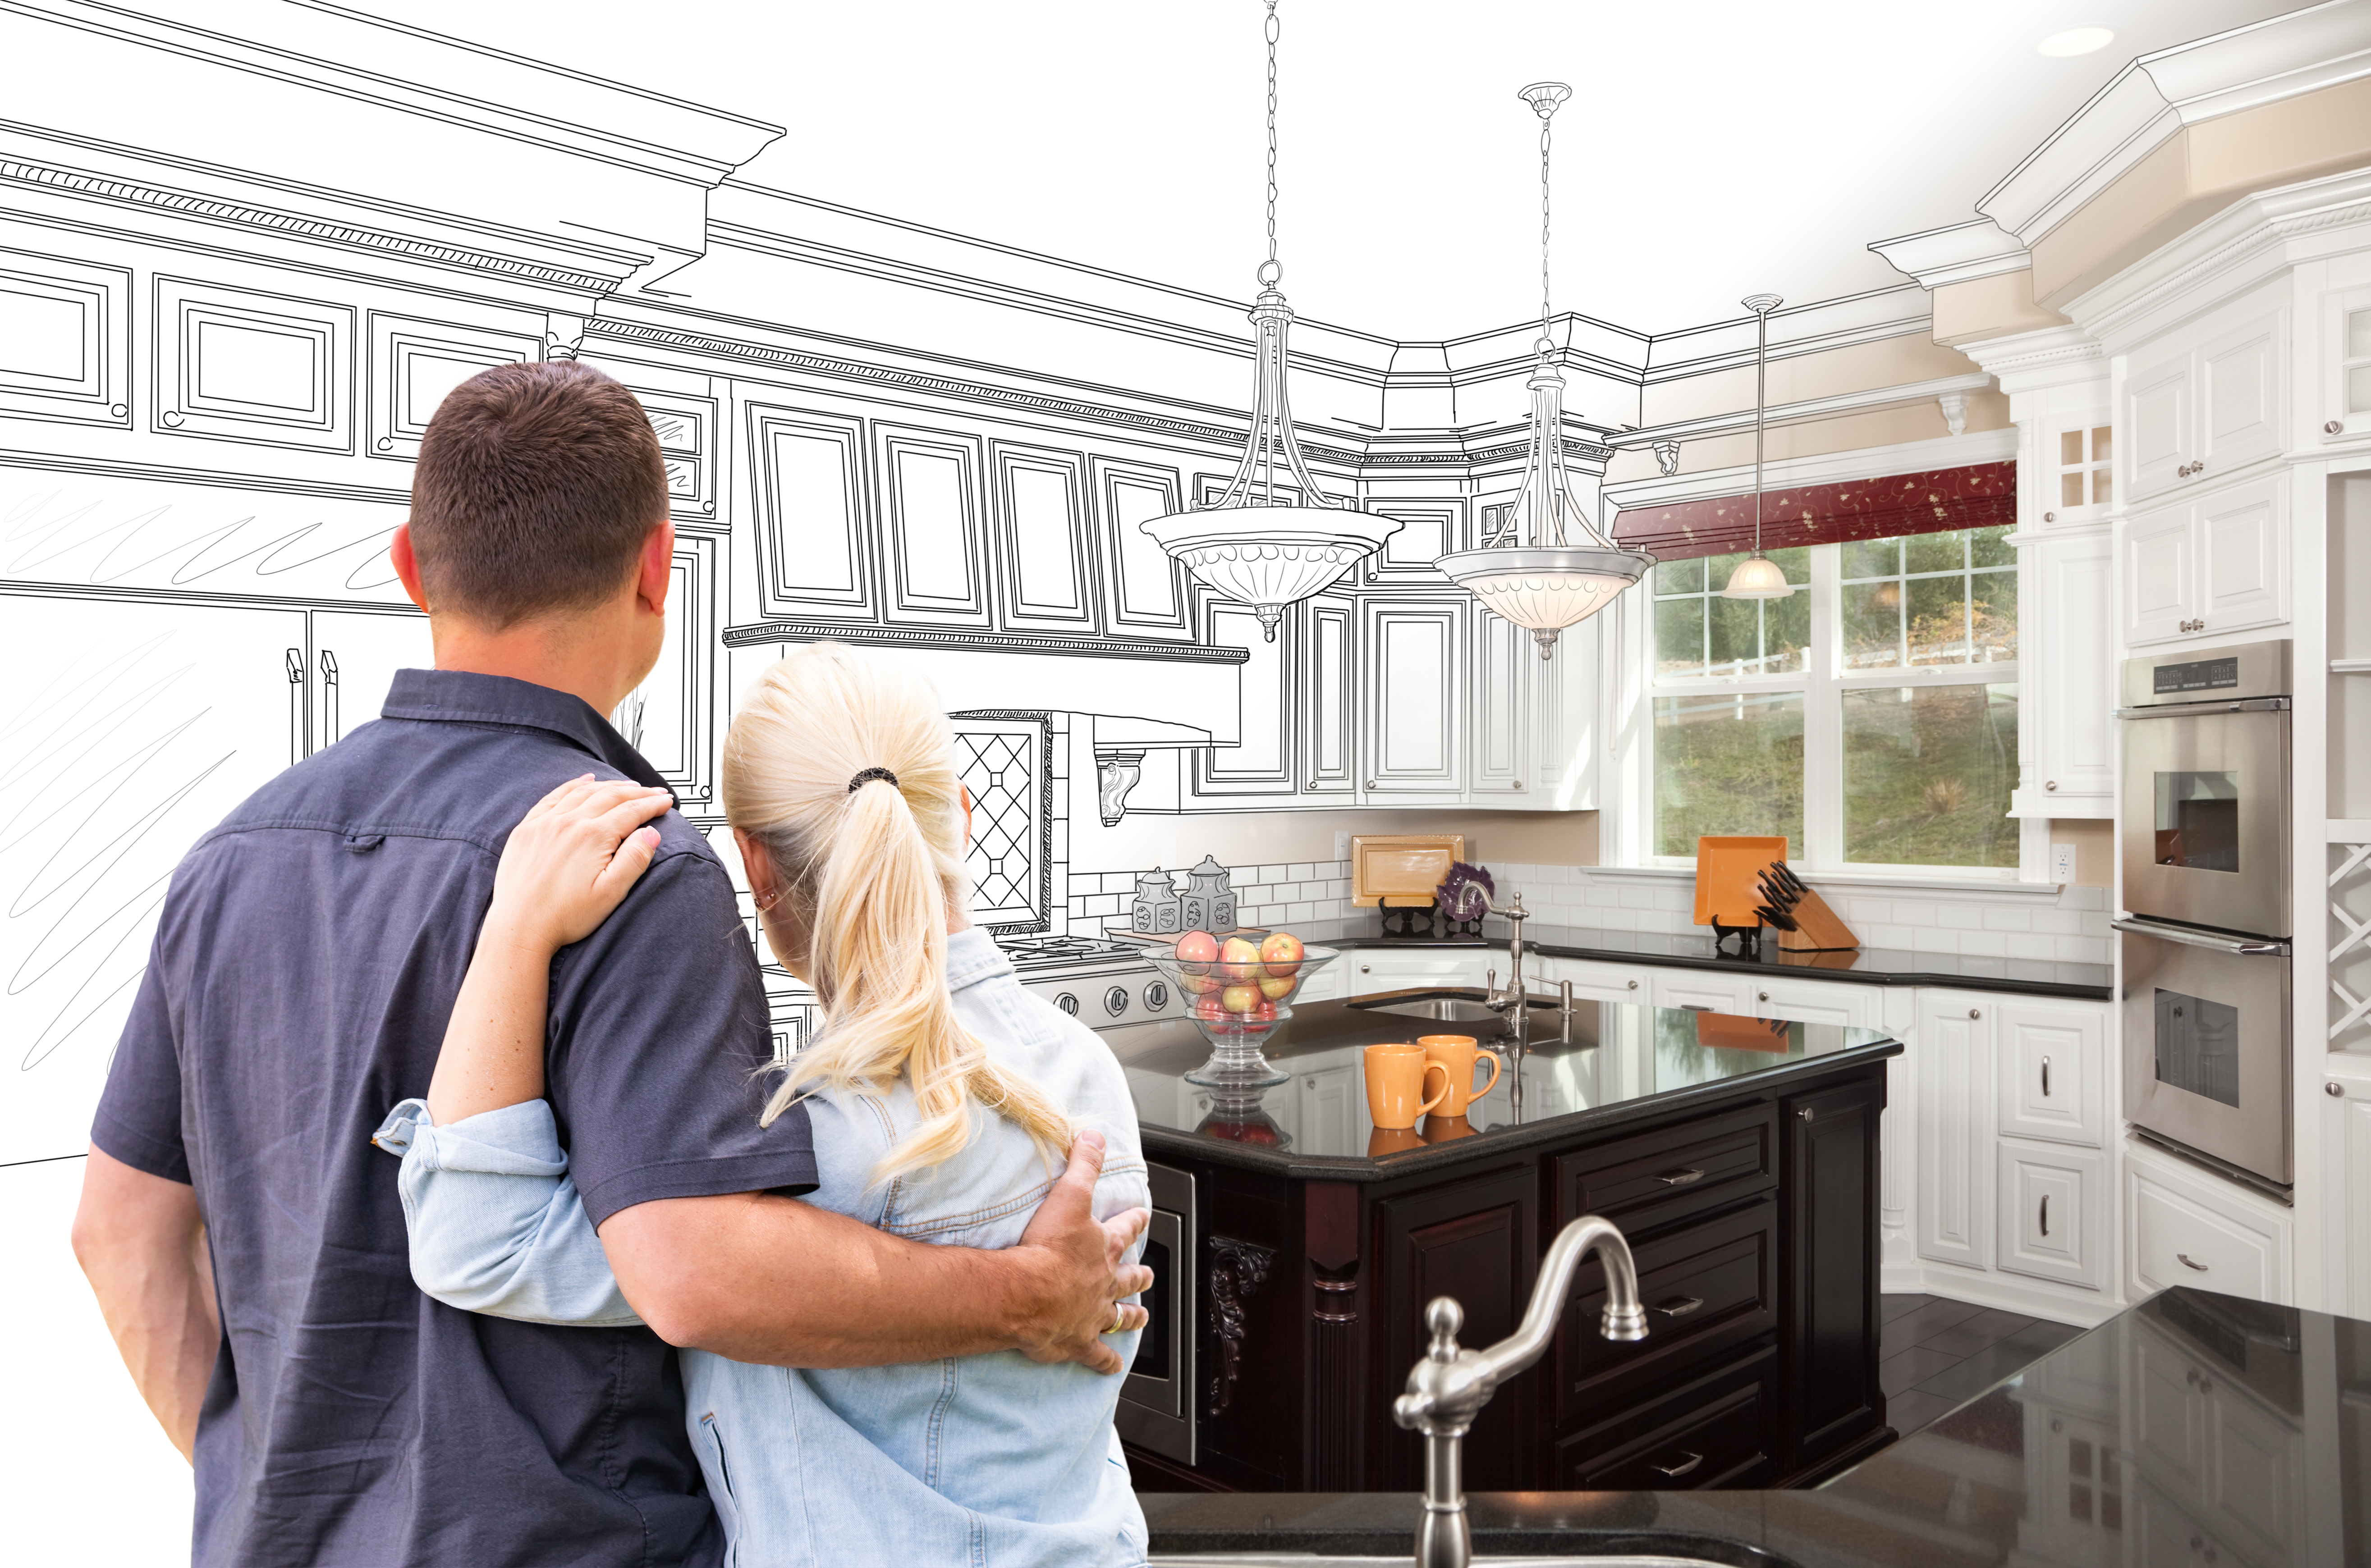 Attendee Info for Home & Outdoor Living show